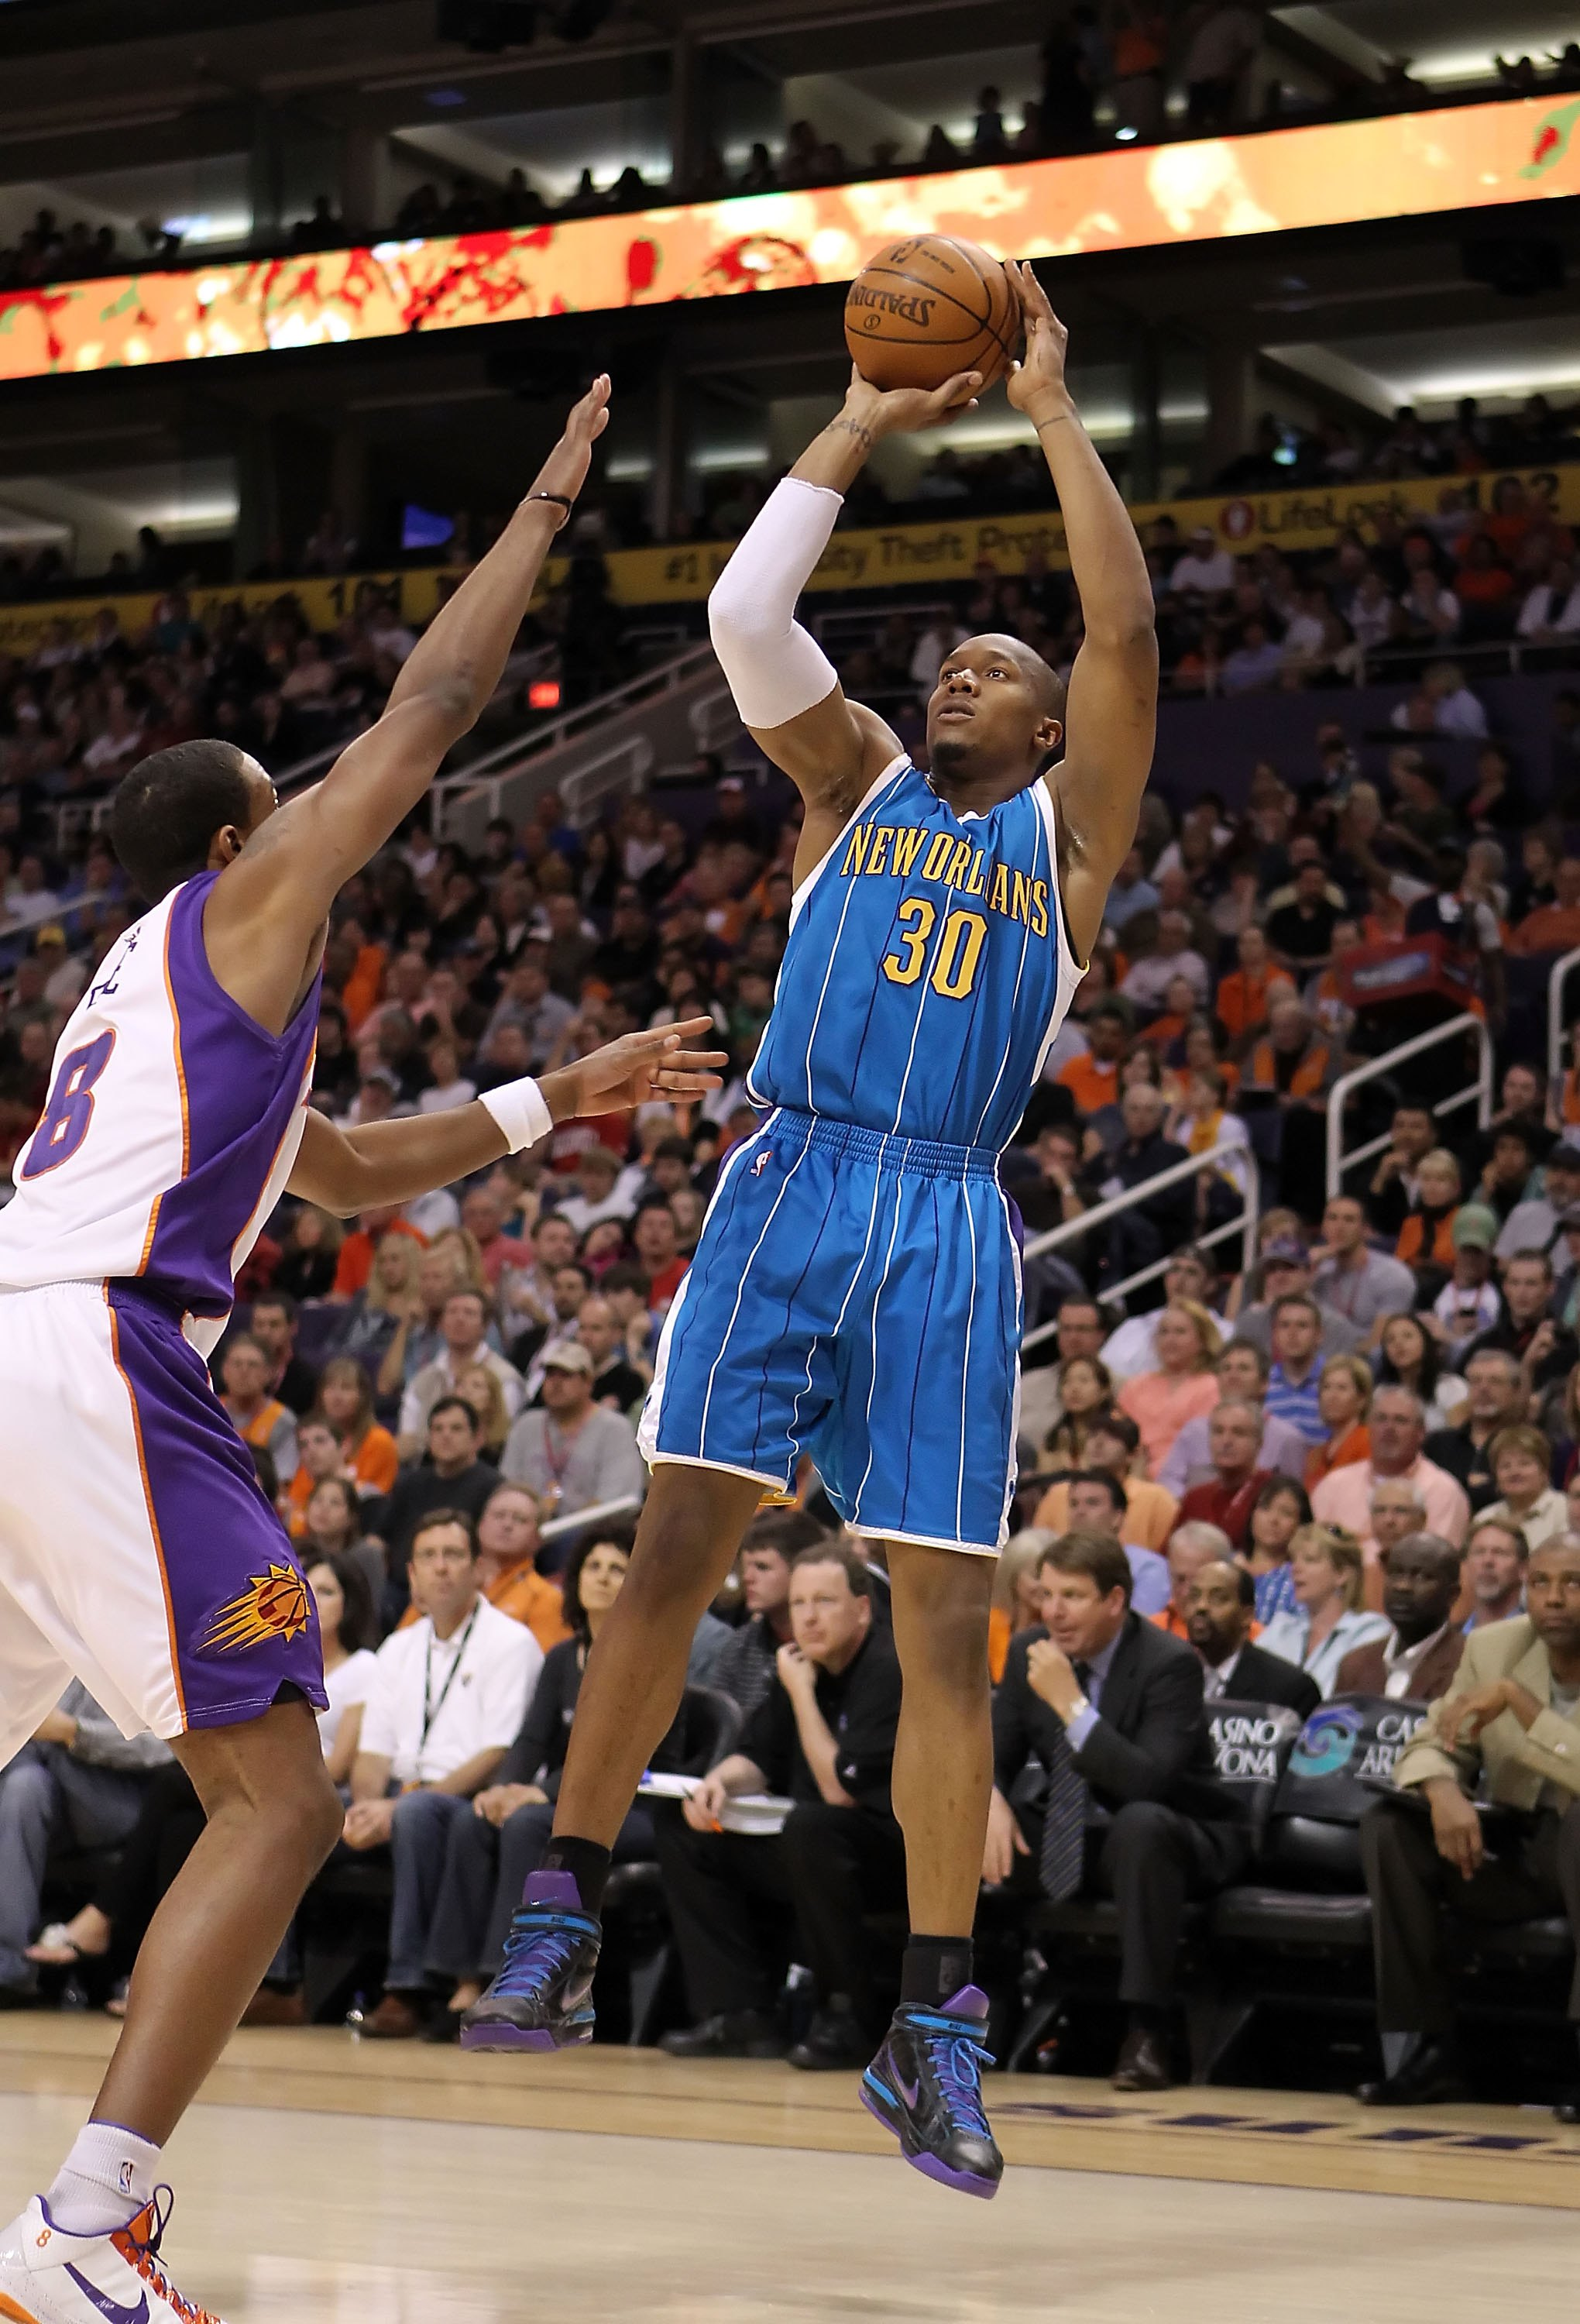 PHOENIX - MARCH 14:  David West #30 of the New Orleans Hornets puts up a shot during the NBA game against the Phoenix Suns at US Airways Center on March 14, 2010 in Phoenix, Arizona.  The Suns defeated the Hornets 120-106.  NOTE TO USER: User expressly ac